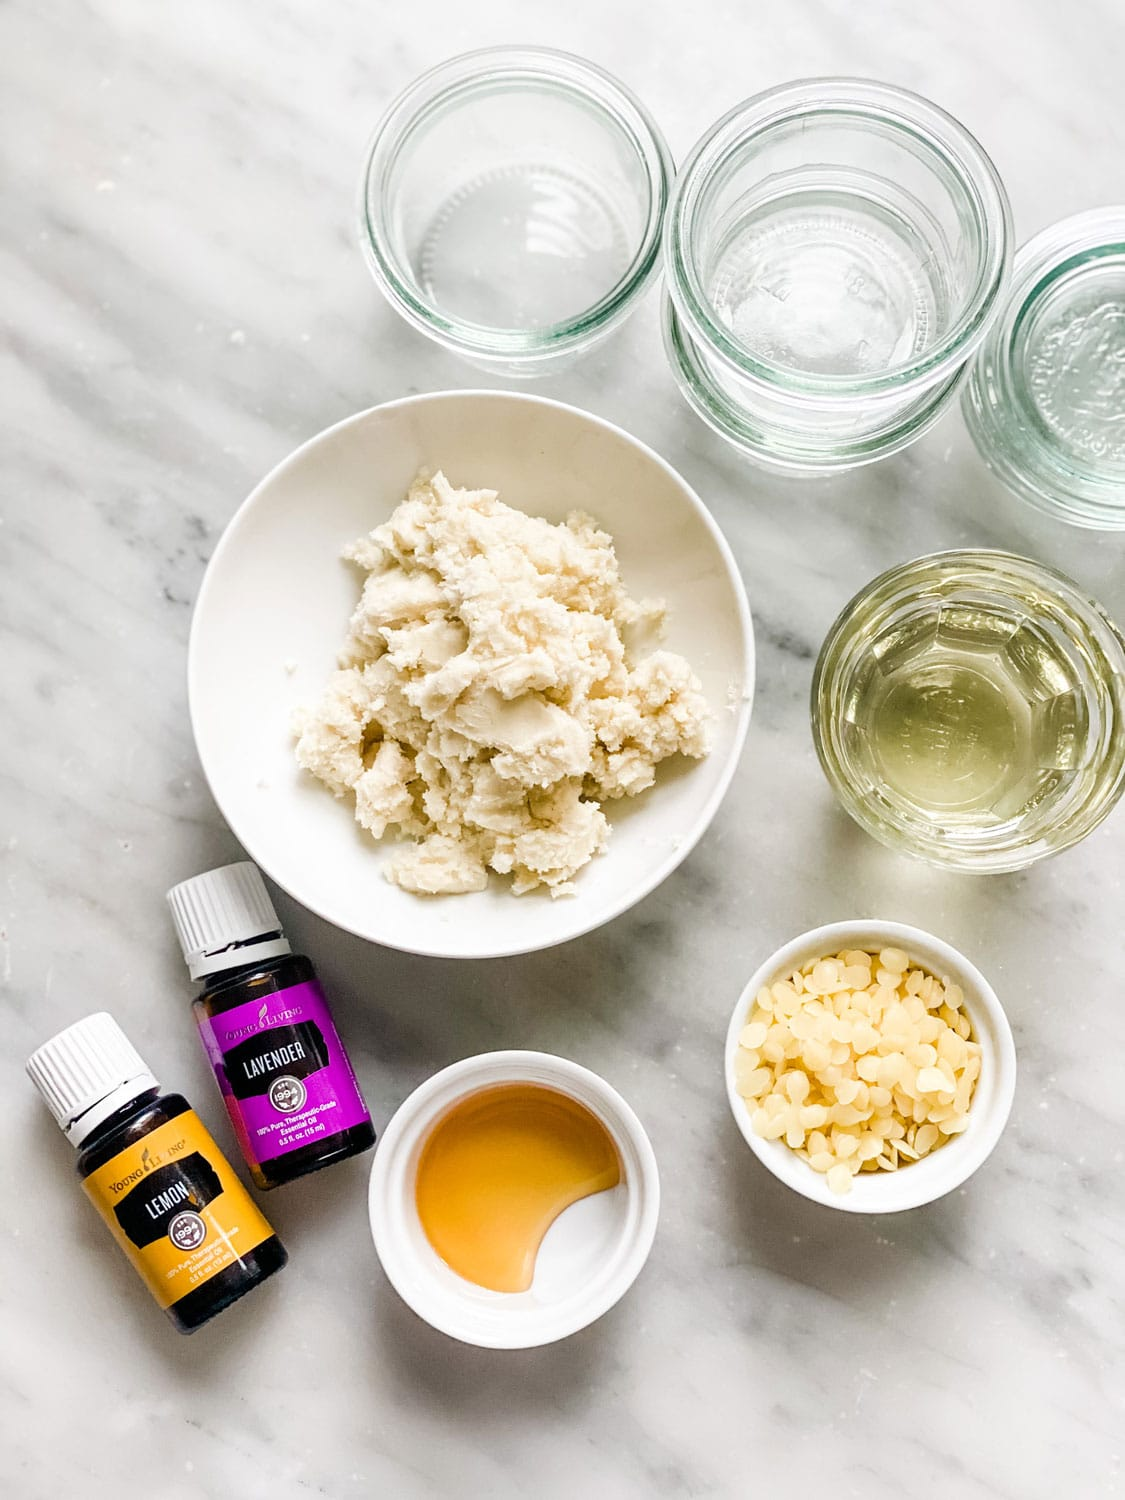 essential oil bottles, ingredients in small bowls on marble counter